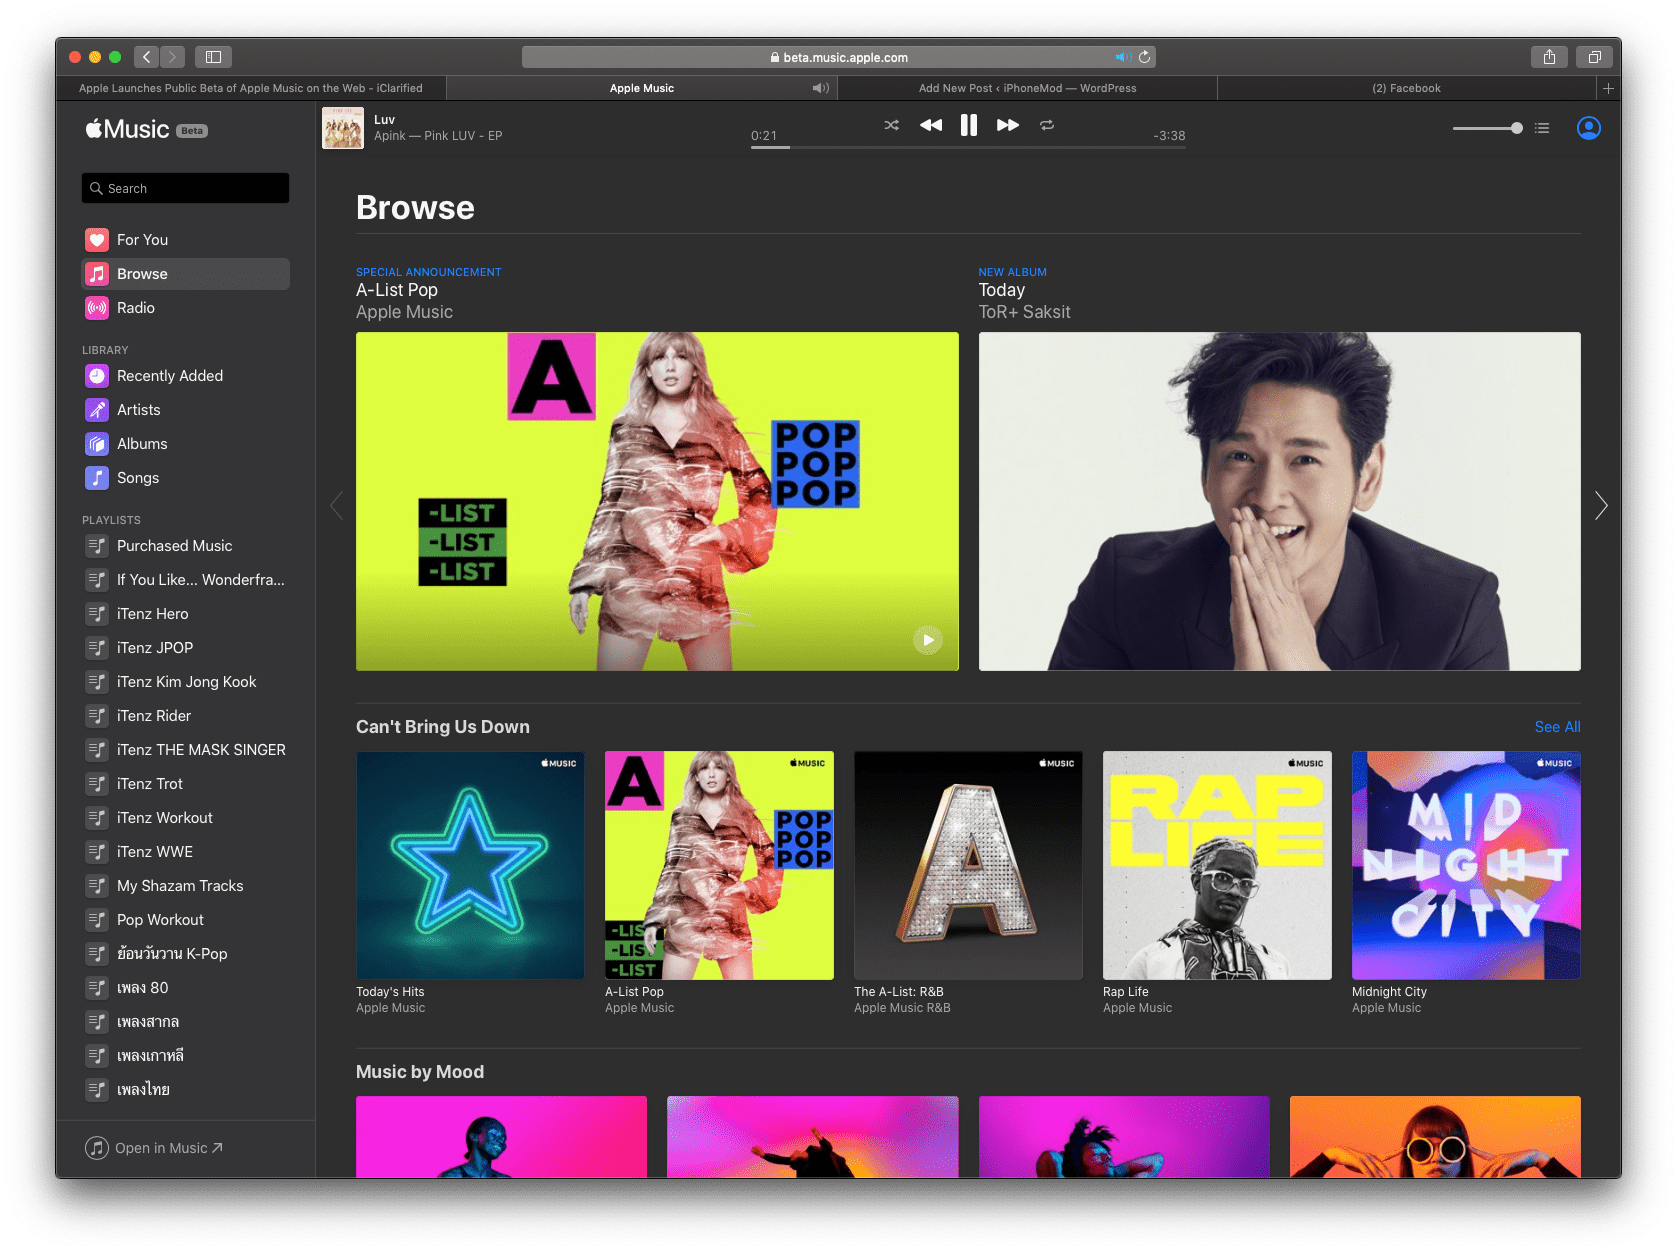 Apple Launches Public Beta Of Apple Music On The Web Img 4